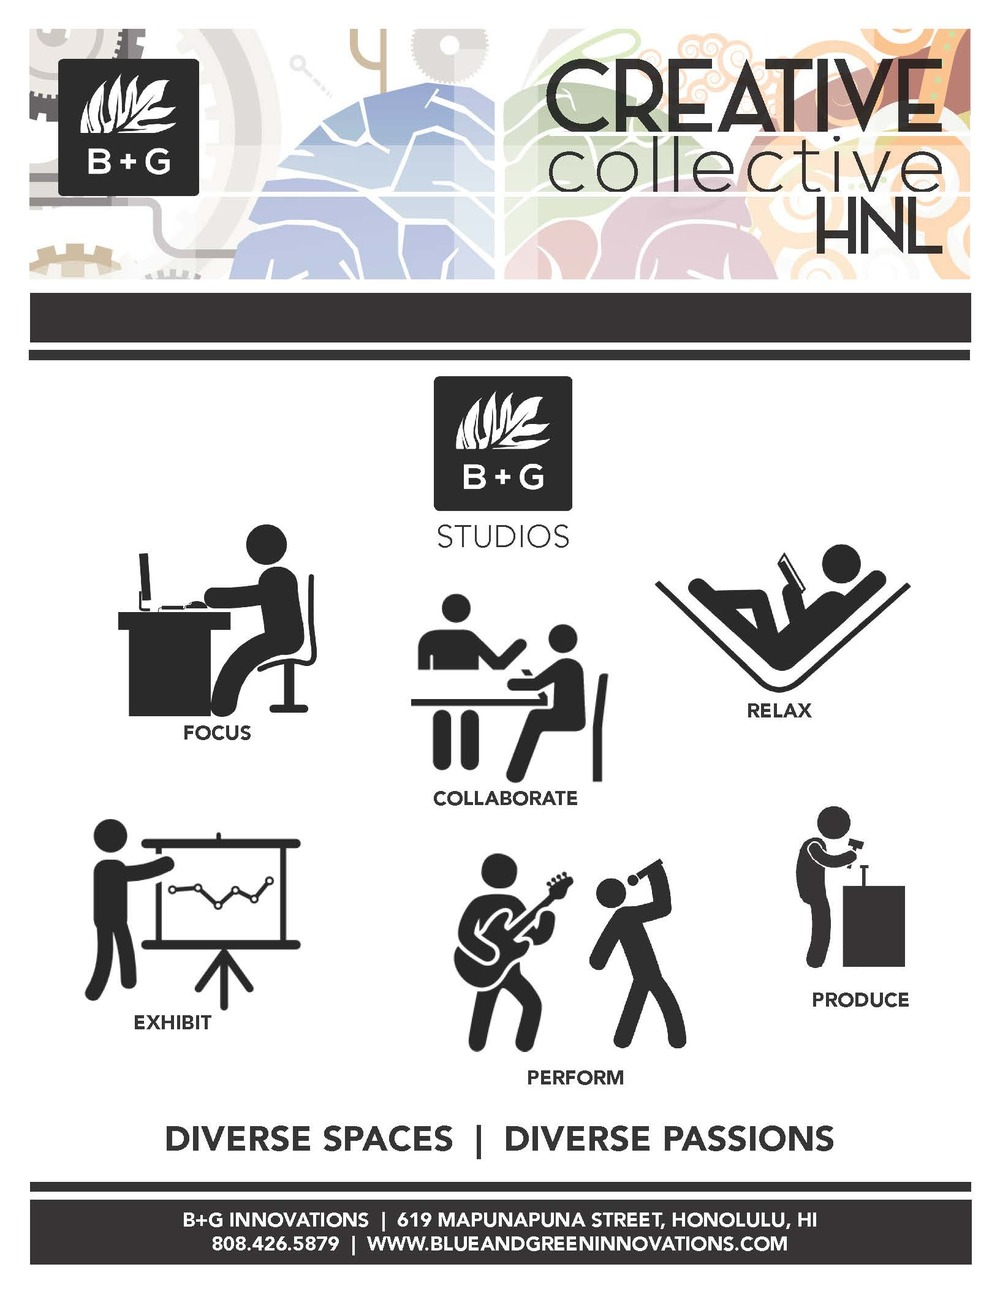 B+G_CREATIVE_COLLECTIVE_Page_08.jpg